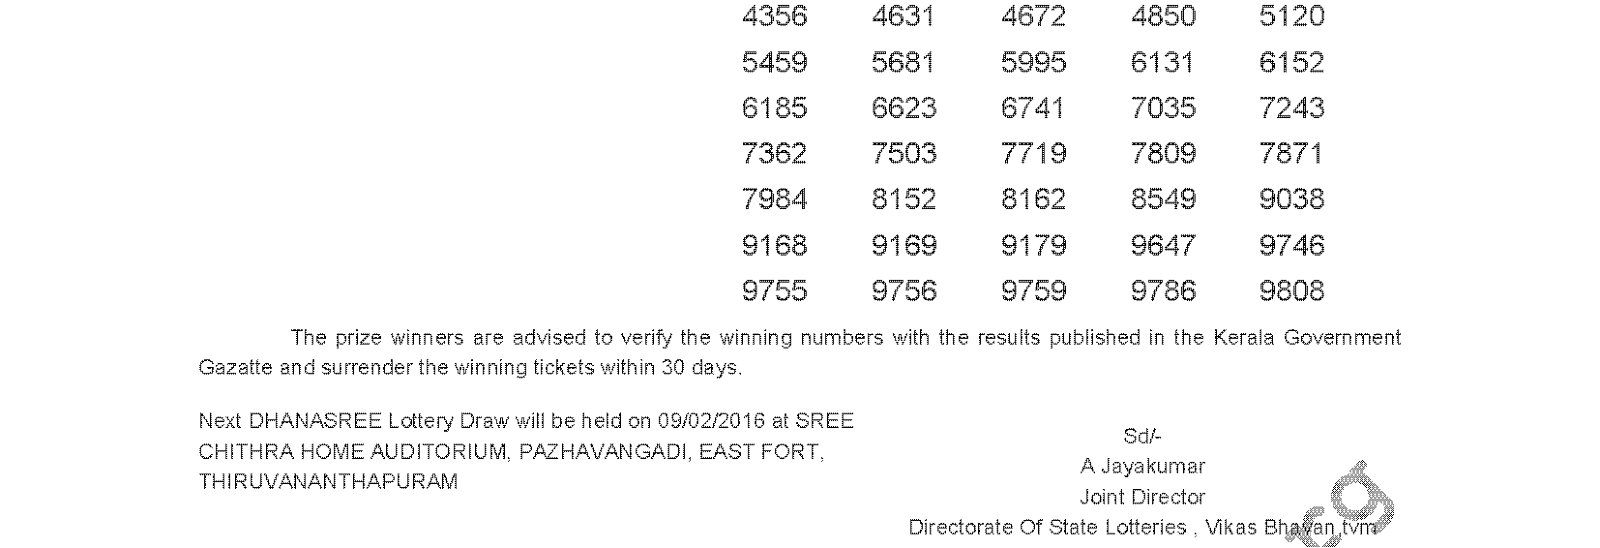 DHANASREE Lottery DS 222 Result 2-2-2016